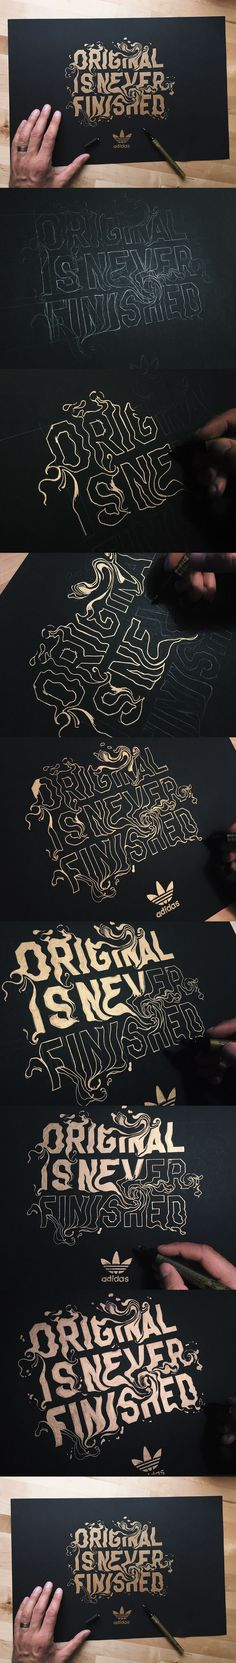 Words of Art – Typography Wall Art Typography Love, Creative Typography, Typography Quotes, Typography Inspiration, Typography Letters, Graphic Design Typography, Graphic Design Inspiration, Types Of Lettering, Lettering Styles